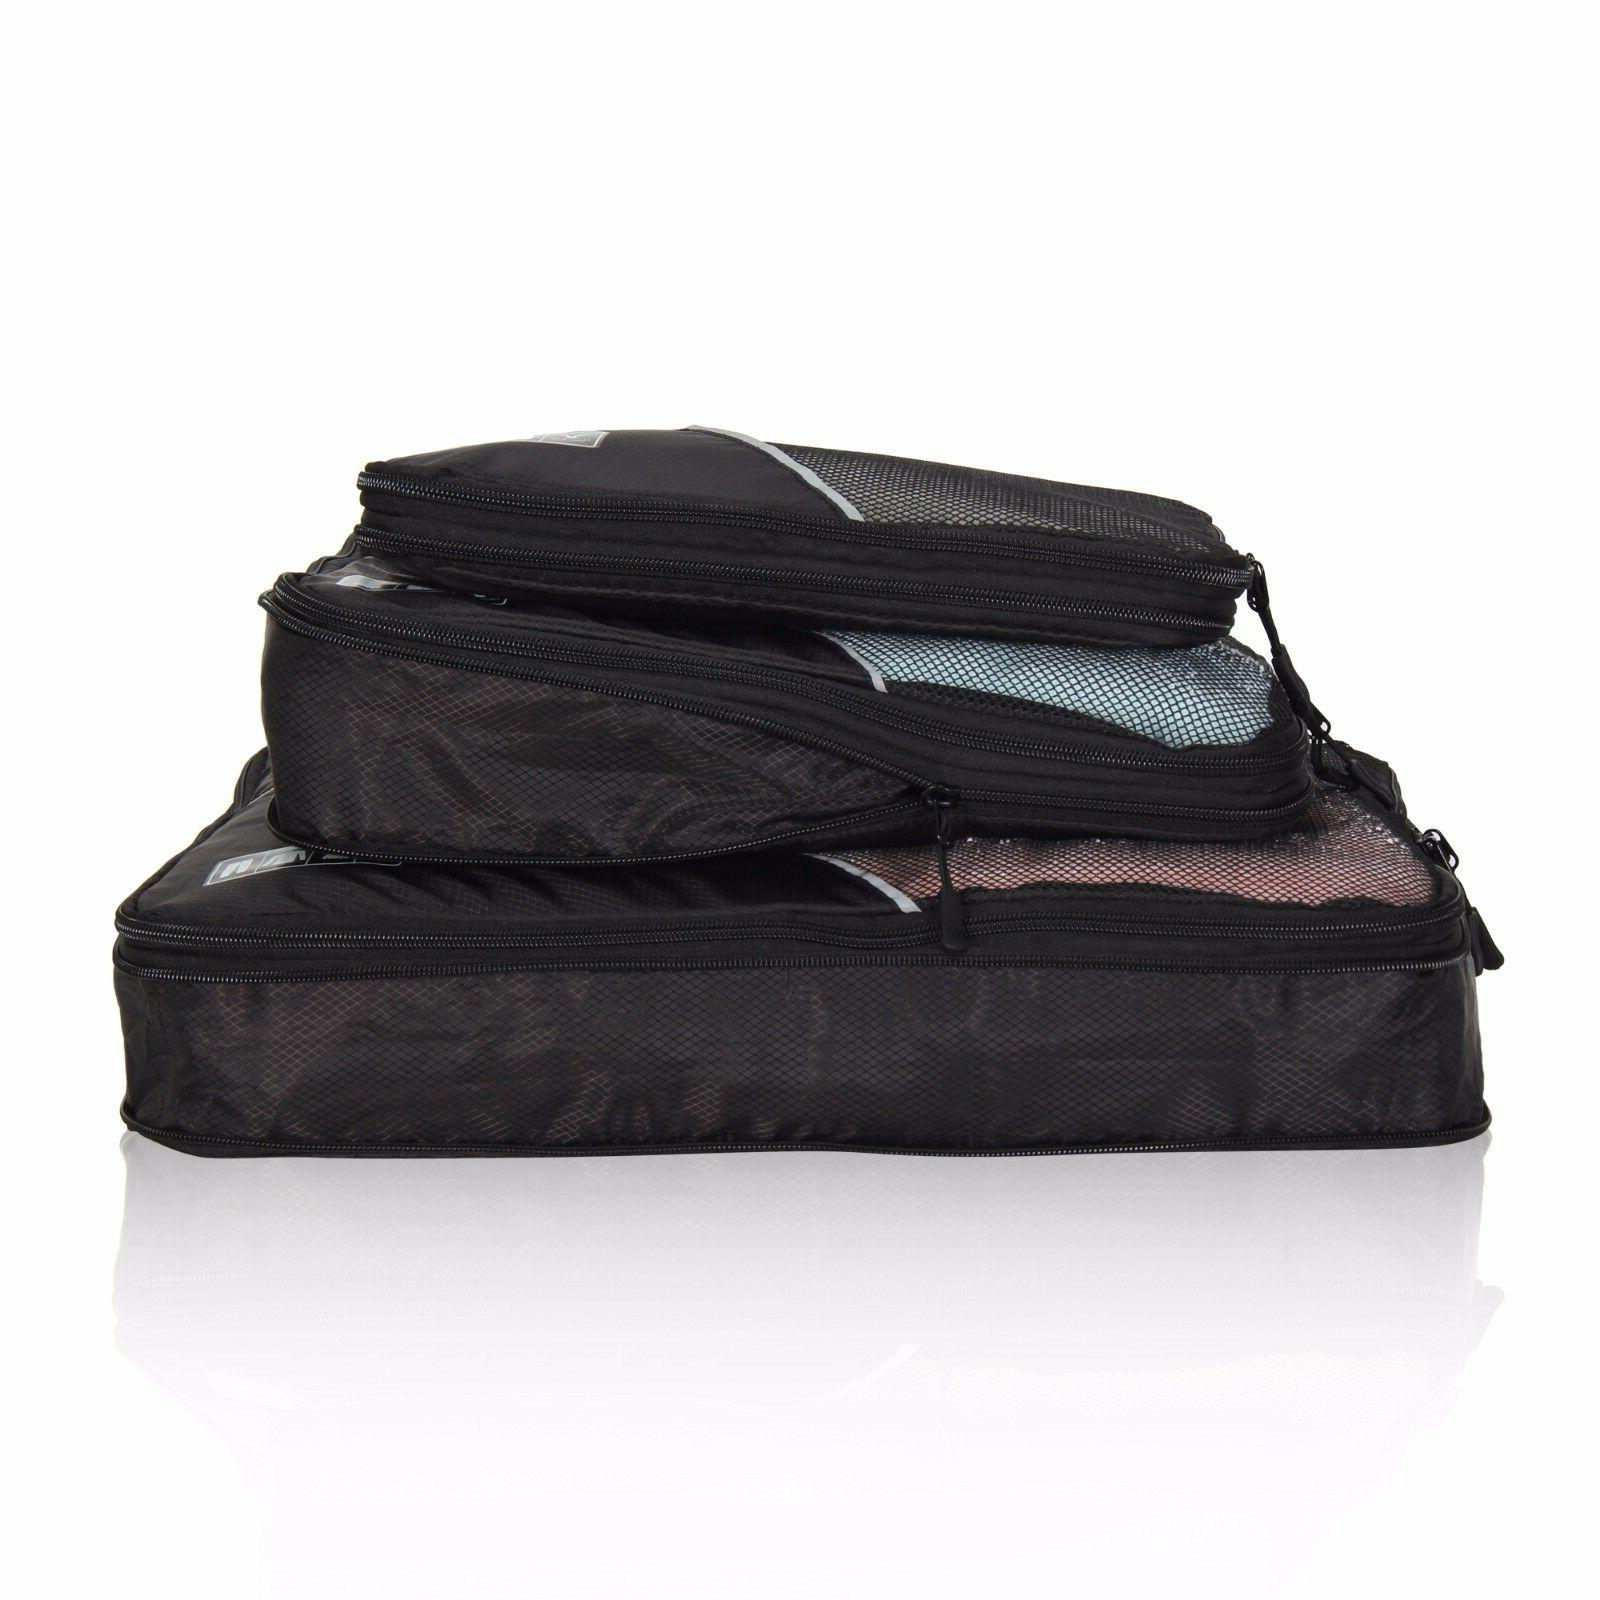 Hynes Eagle Travel 3pcs Travel Organizers Compression Packin